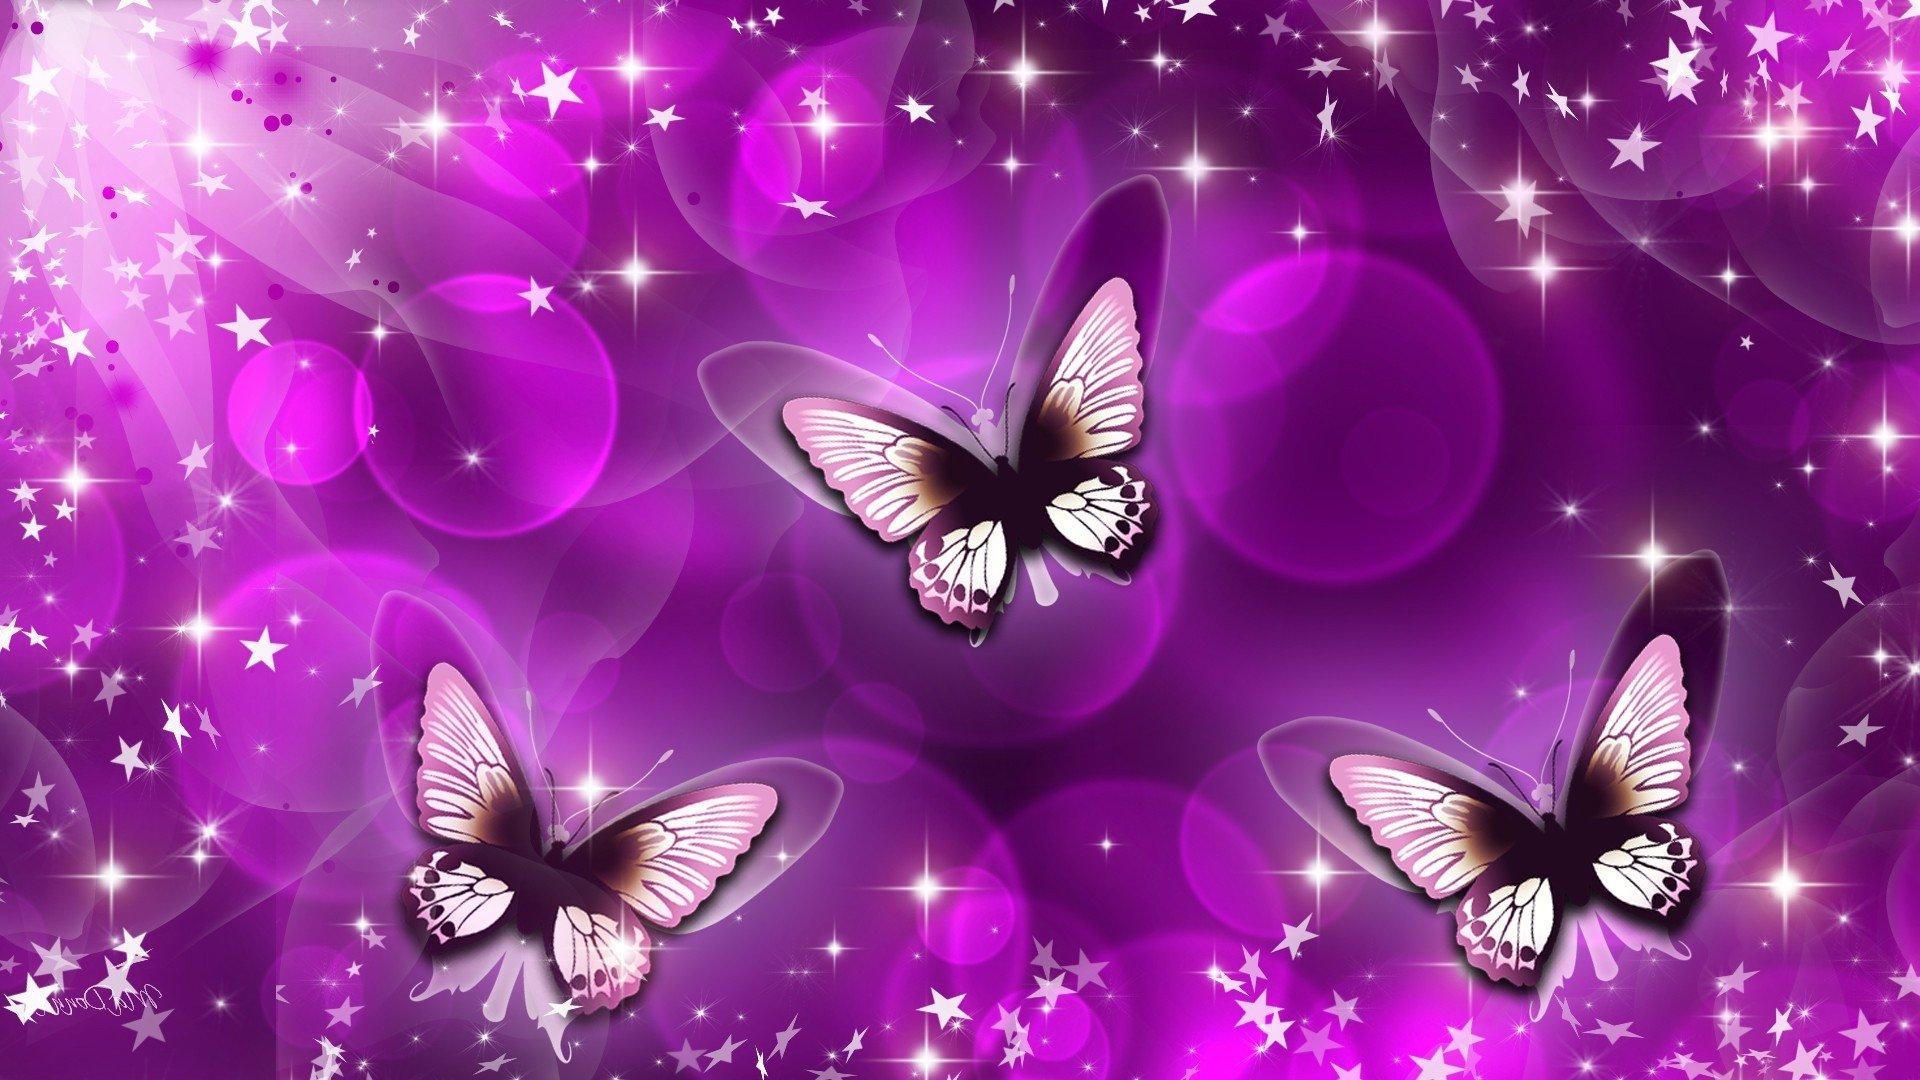 3d hd wallpaper com animated butterfly wallpaper animated butterfly 1920x1080